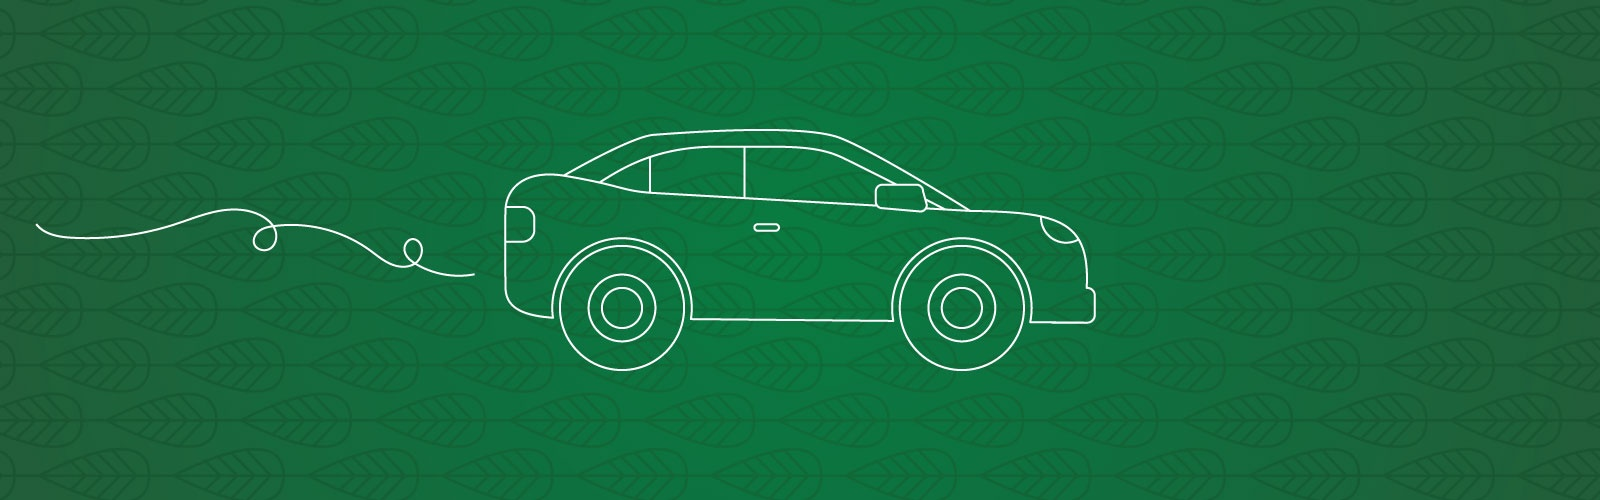 White lineart of a car against a dark green background